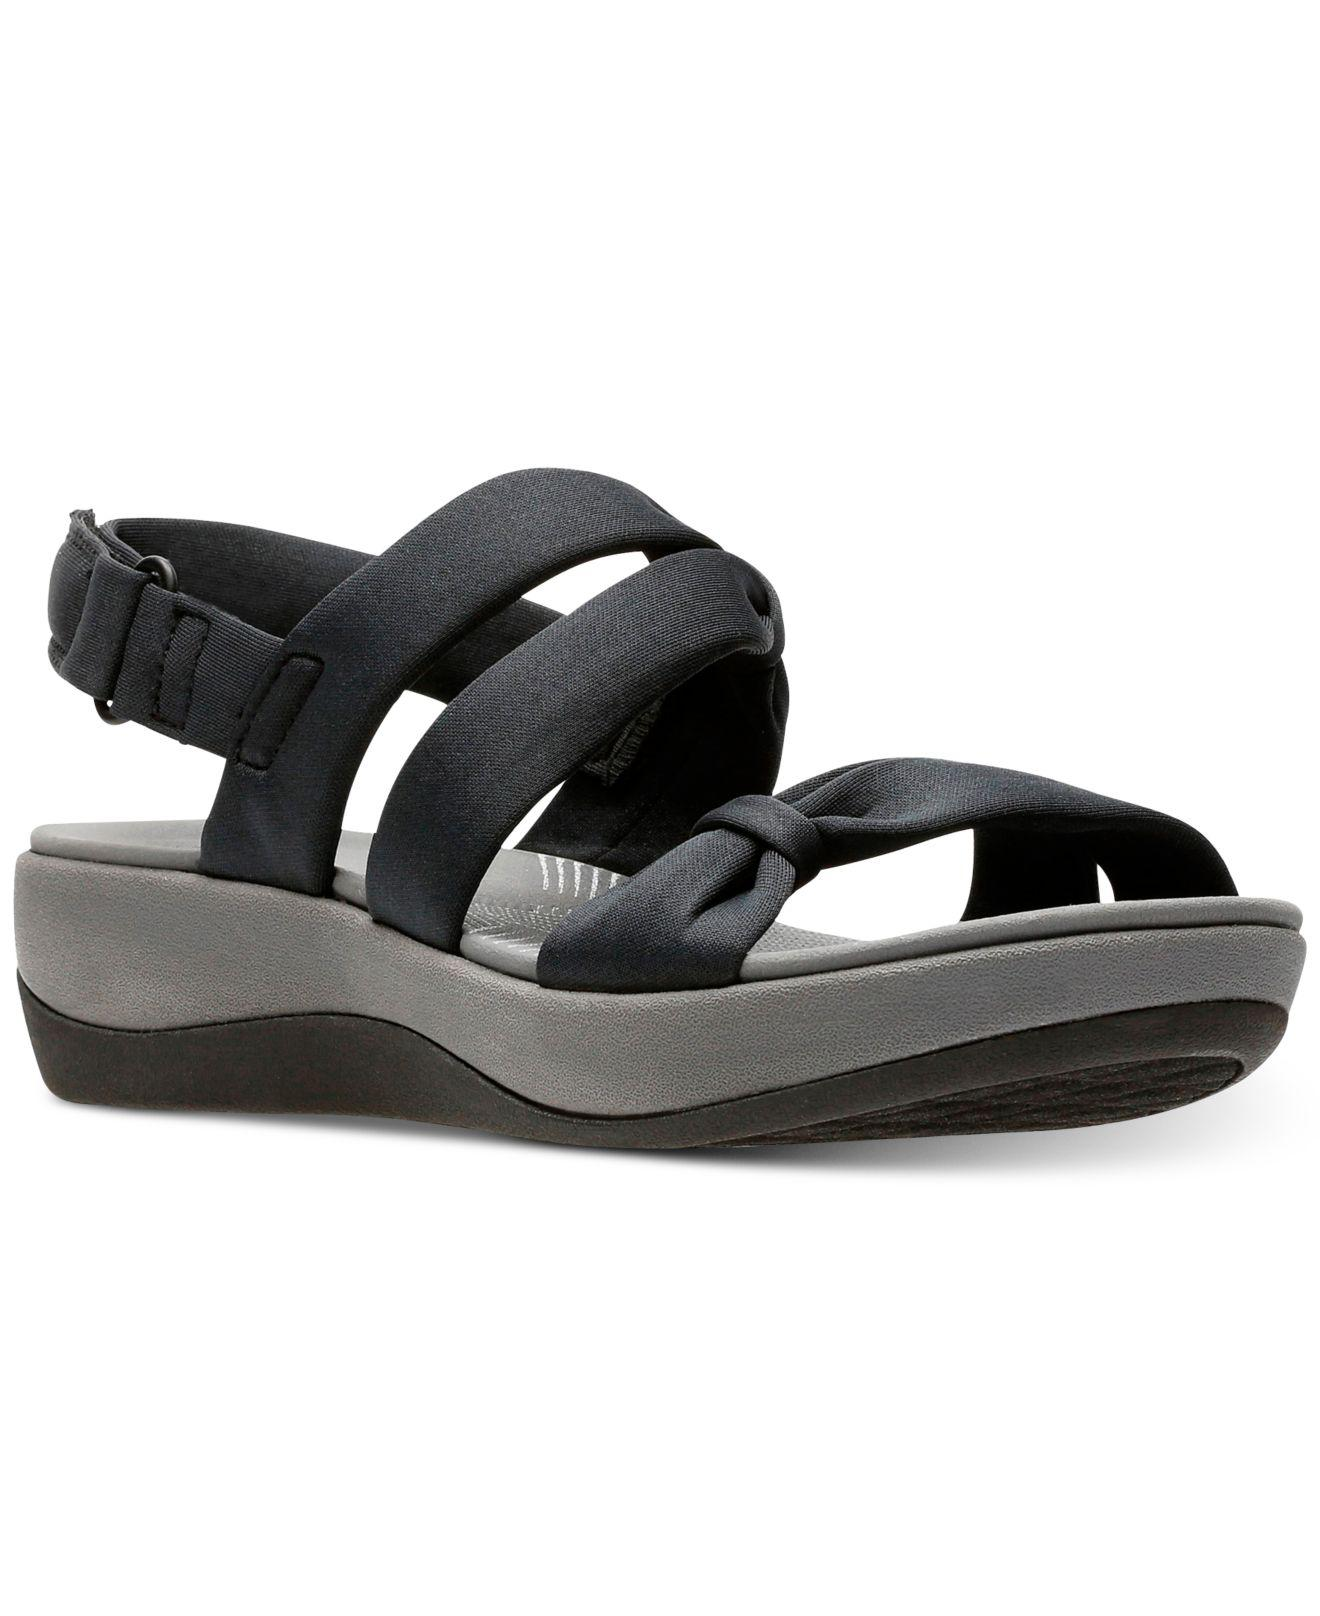 409382e33e11 Lyst - Clarks Cloudsteppers Arla Mae Wedge Sandals in Black